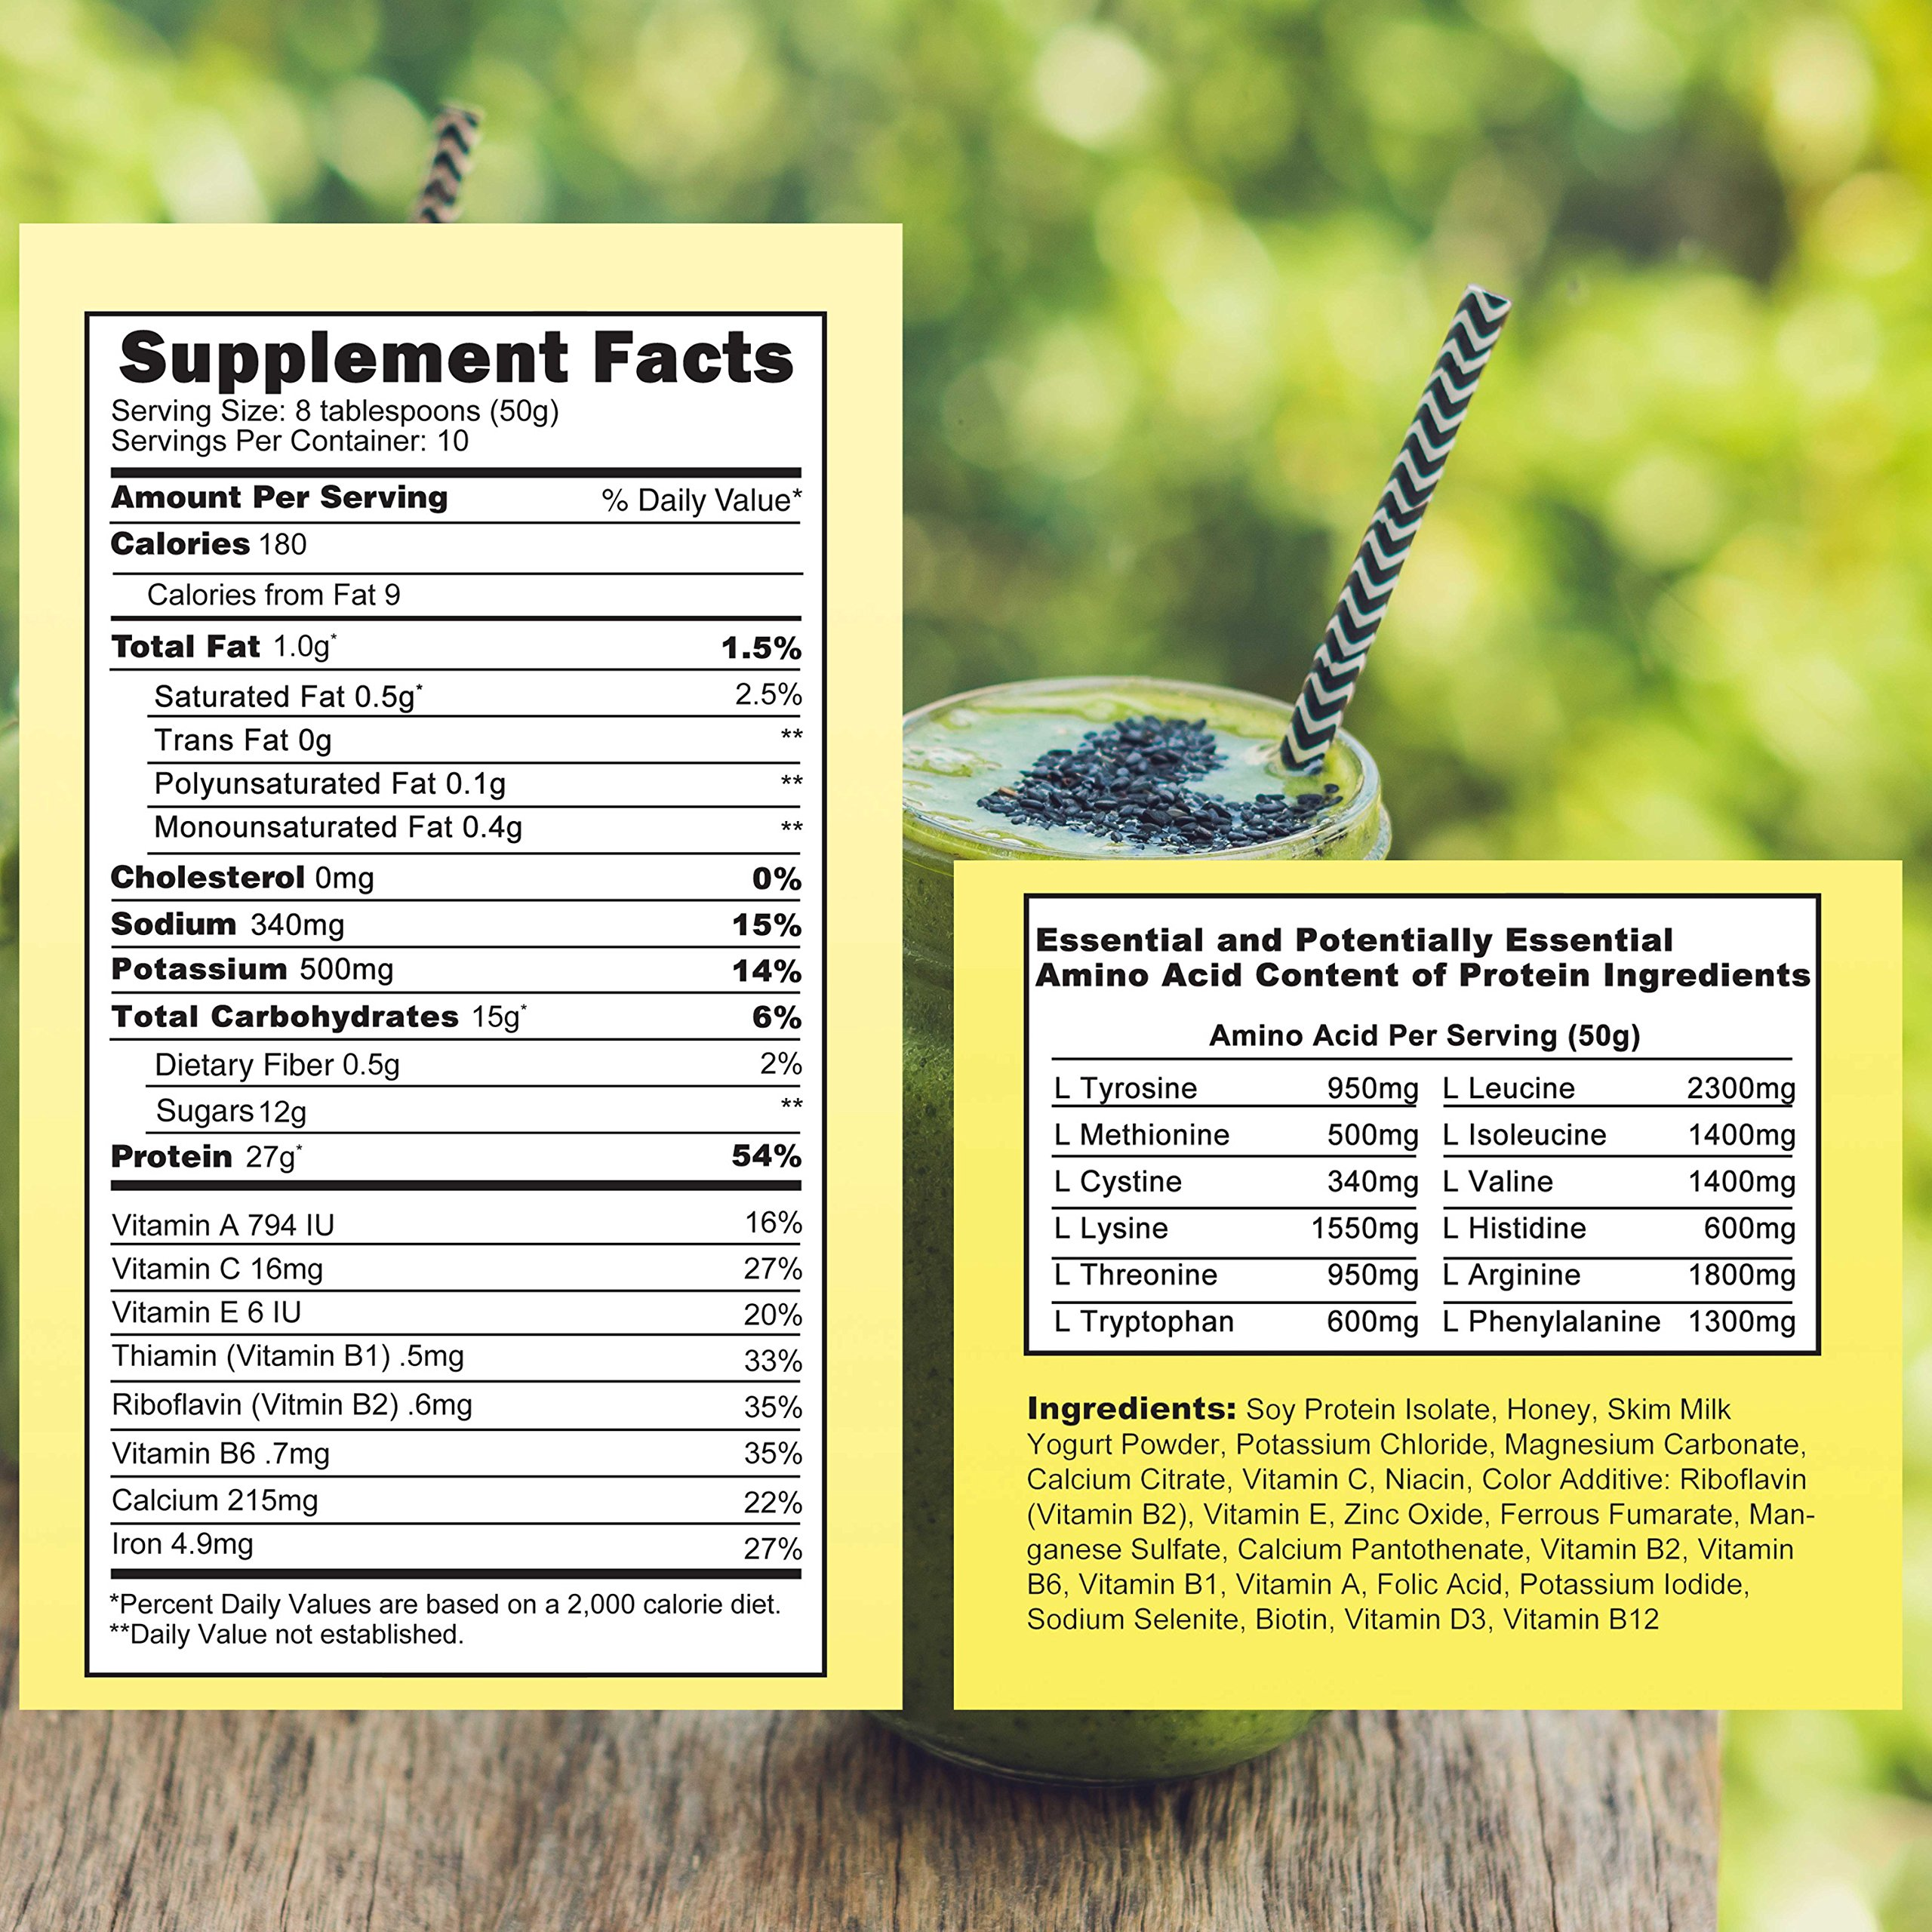 Almased Meal Replacement Shakes -Plant Based Protein Powder - Weight Management Shake and Meal Replacement - All Natural, Gluten Free, No Sugar Added (3 pack Bonus Diet Book and Stress Ball)        by Almased (Image #1)